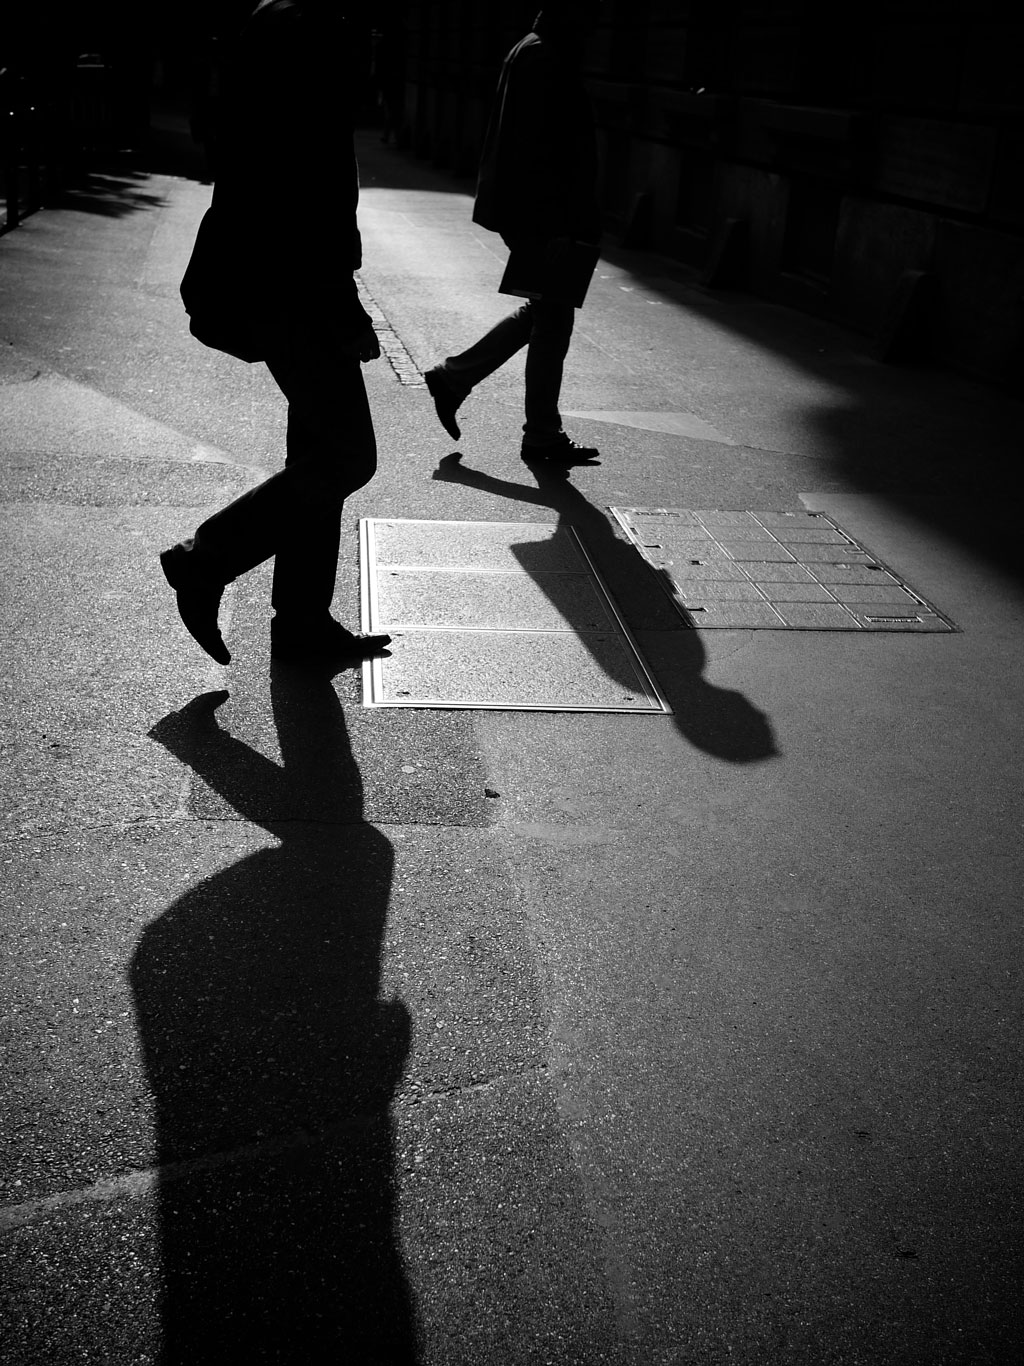 BW image of two figures with shadows